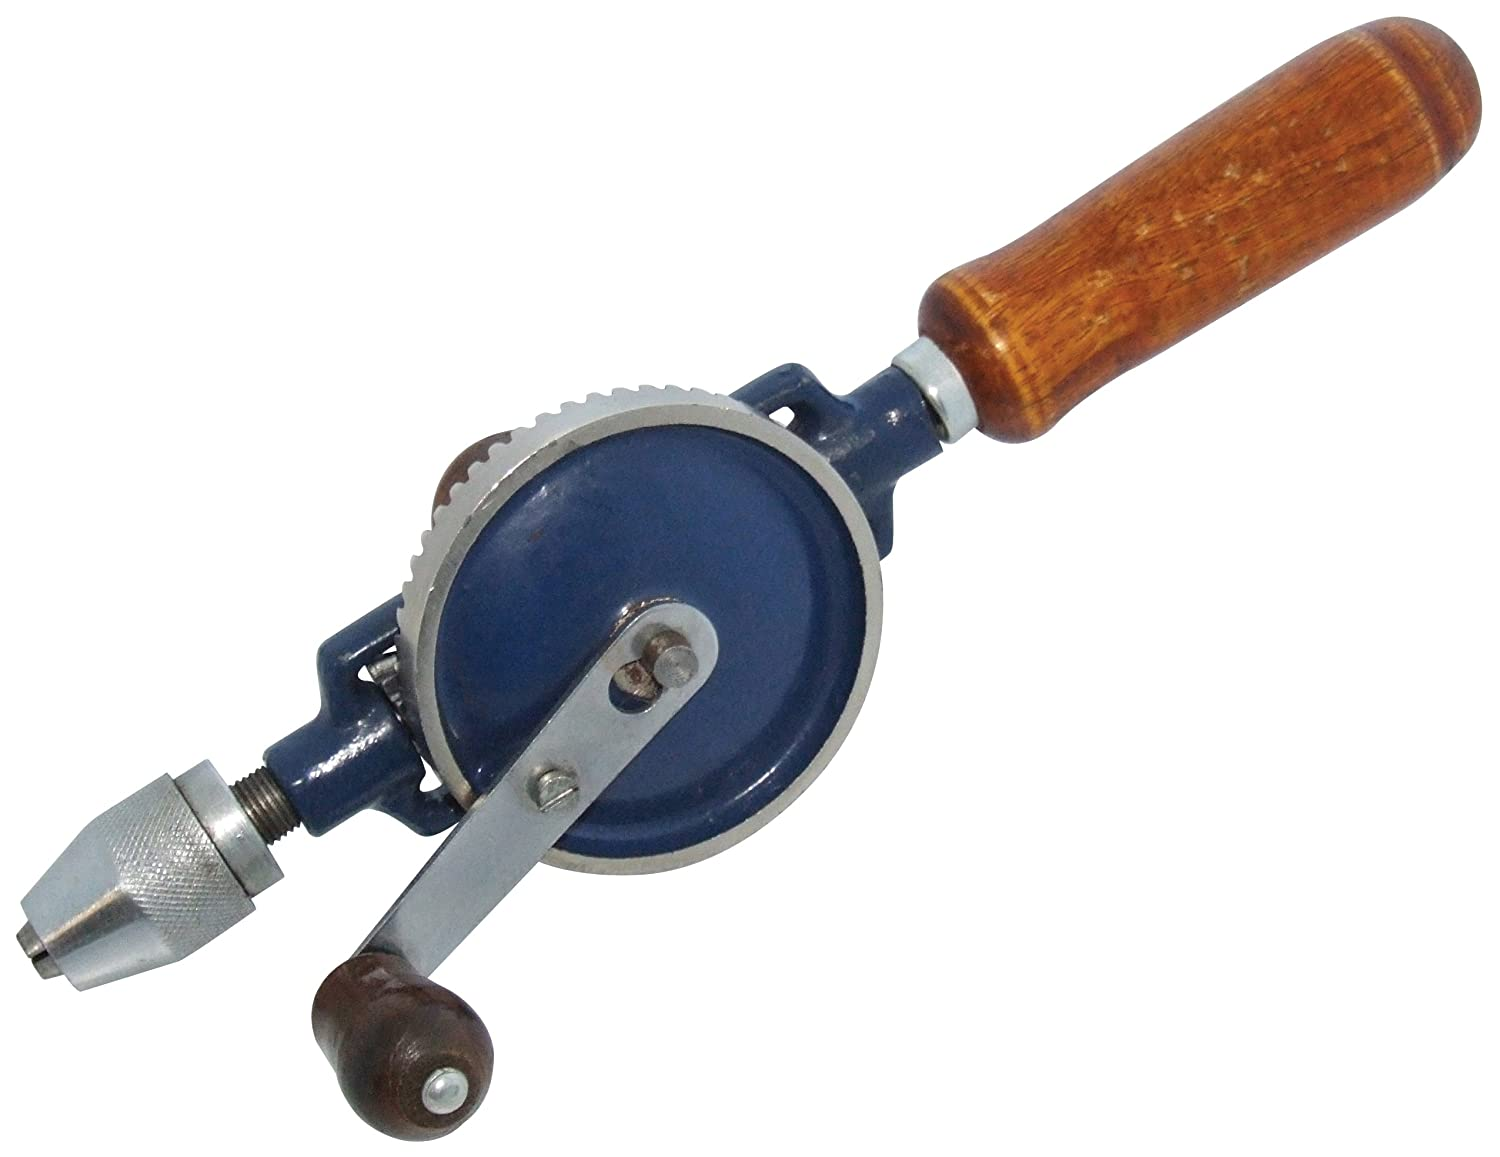 Old Fashioned Hand Drill